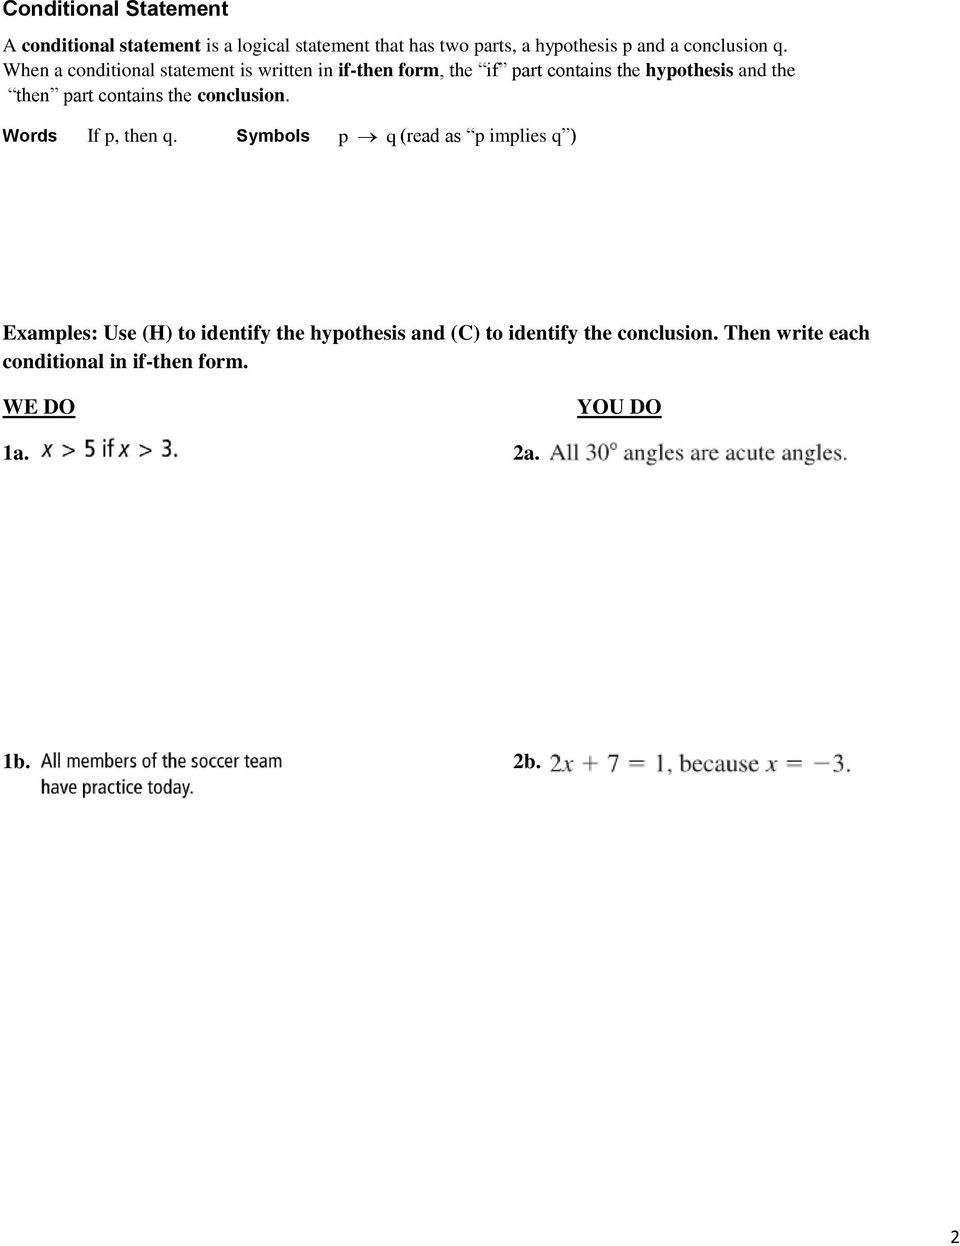 Conditional Statement Worksheet Geometry Geometry Notes Pdf Free Download